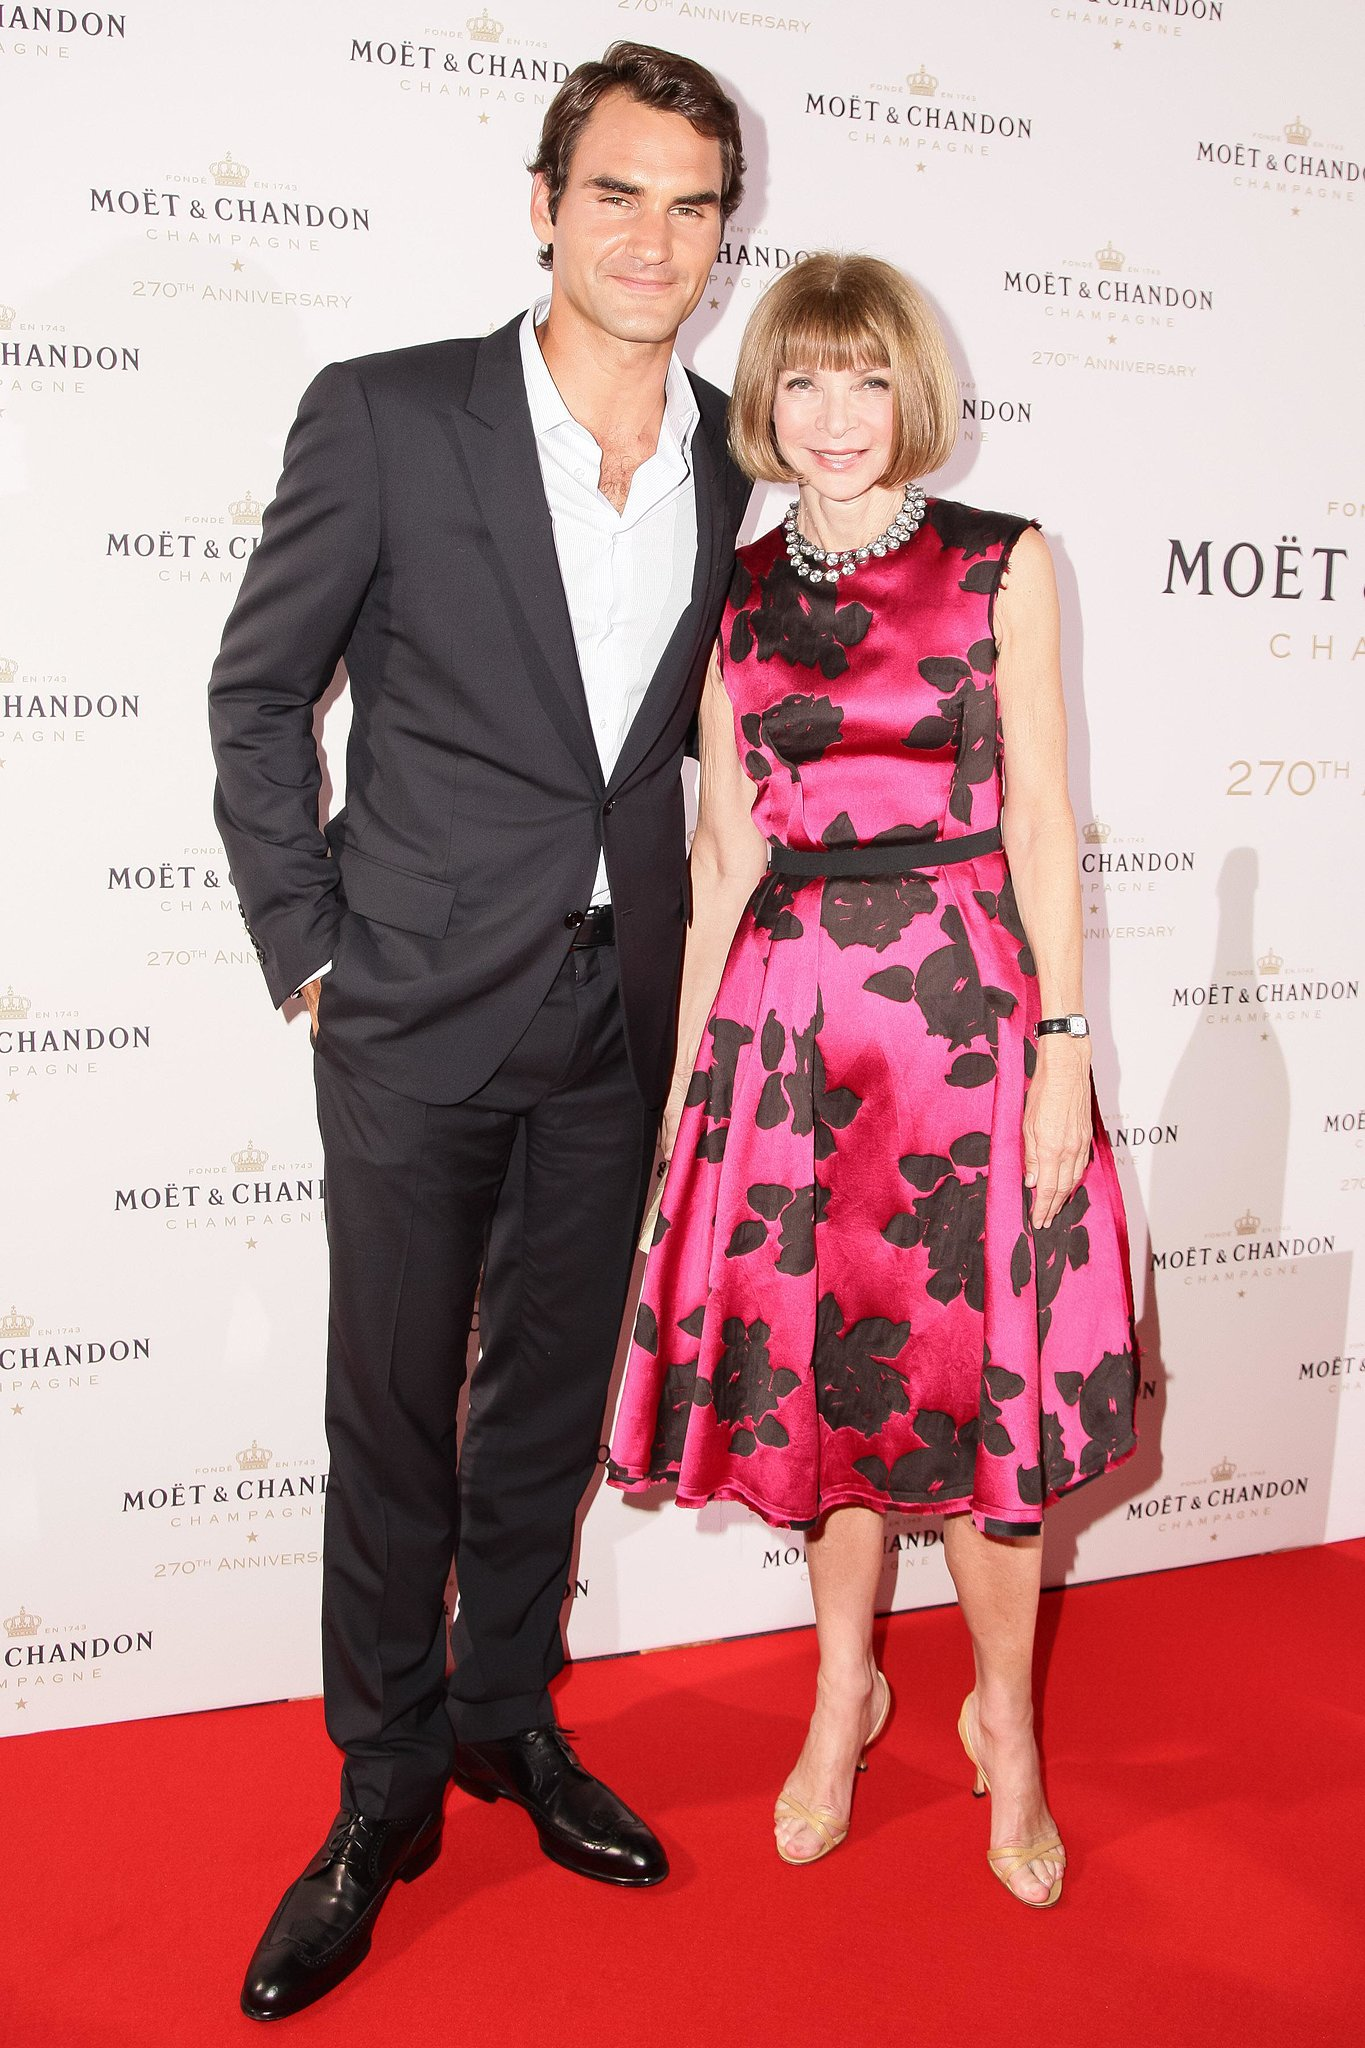 Roger Federer and Anna Wintour made the red carpet rounds to fete Moët & Chandon's anniversary.